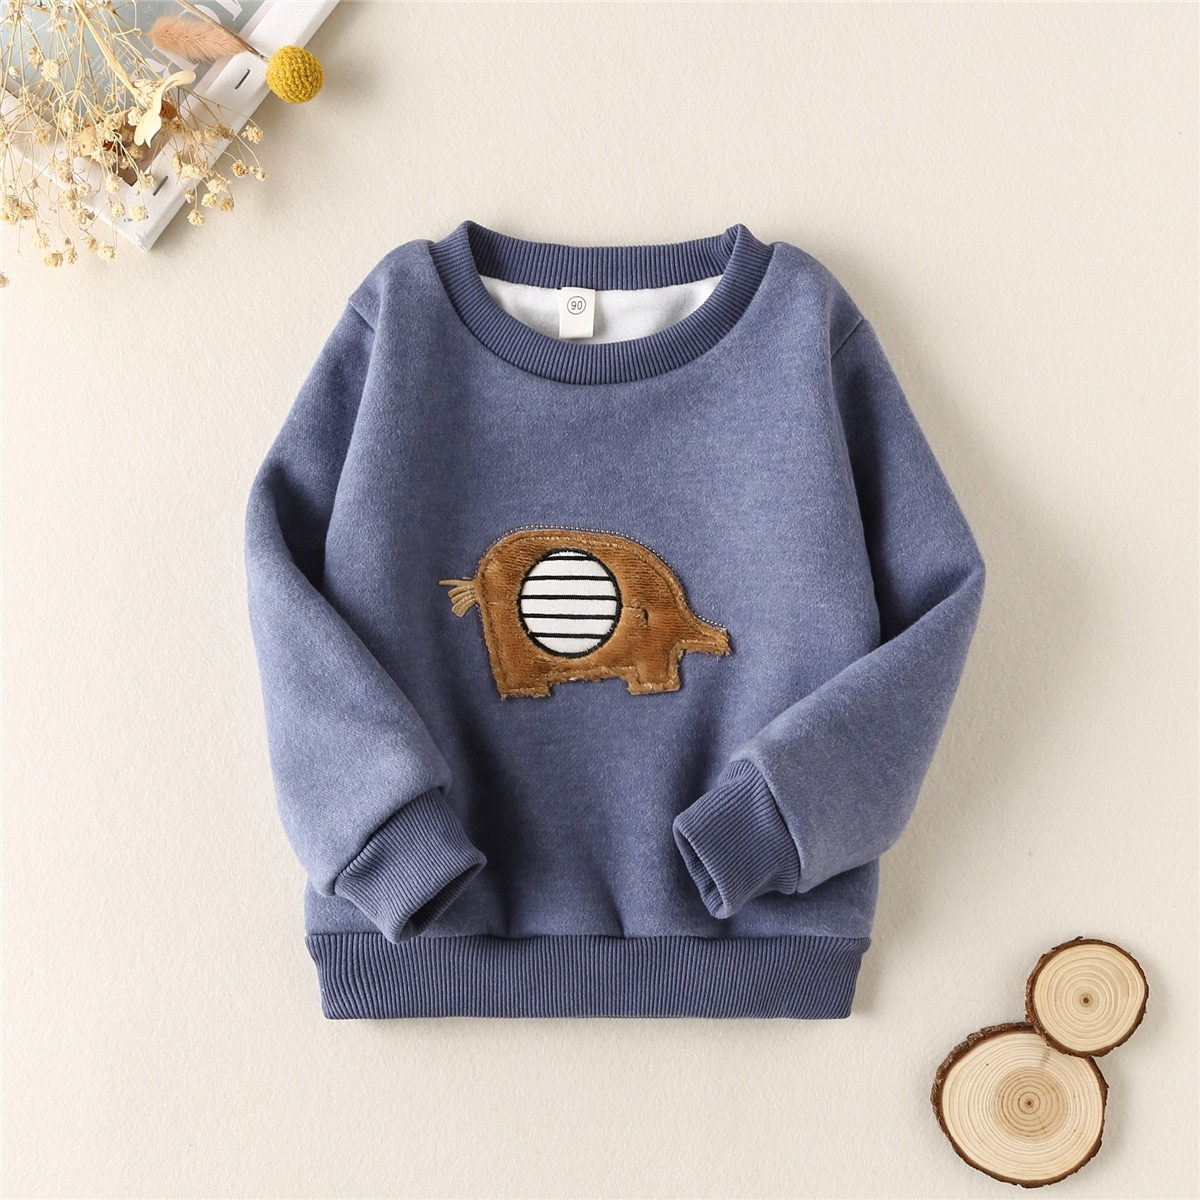 Toddler Boys Cartoon Patched Thermal Lined Sweatshirt